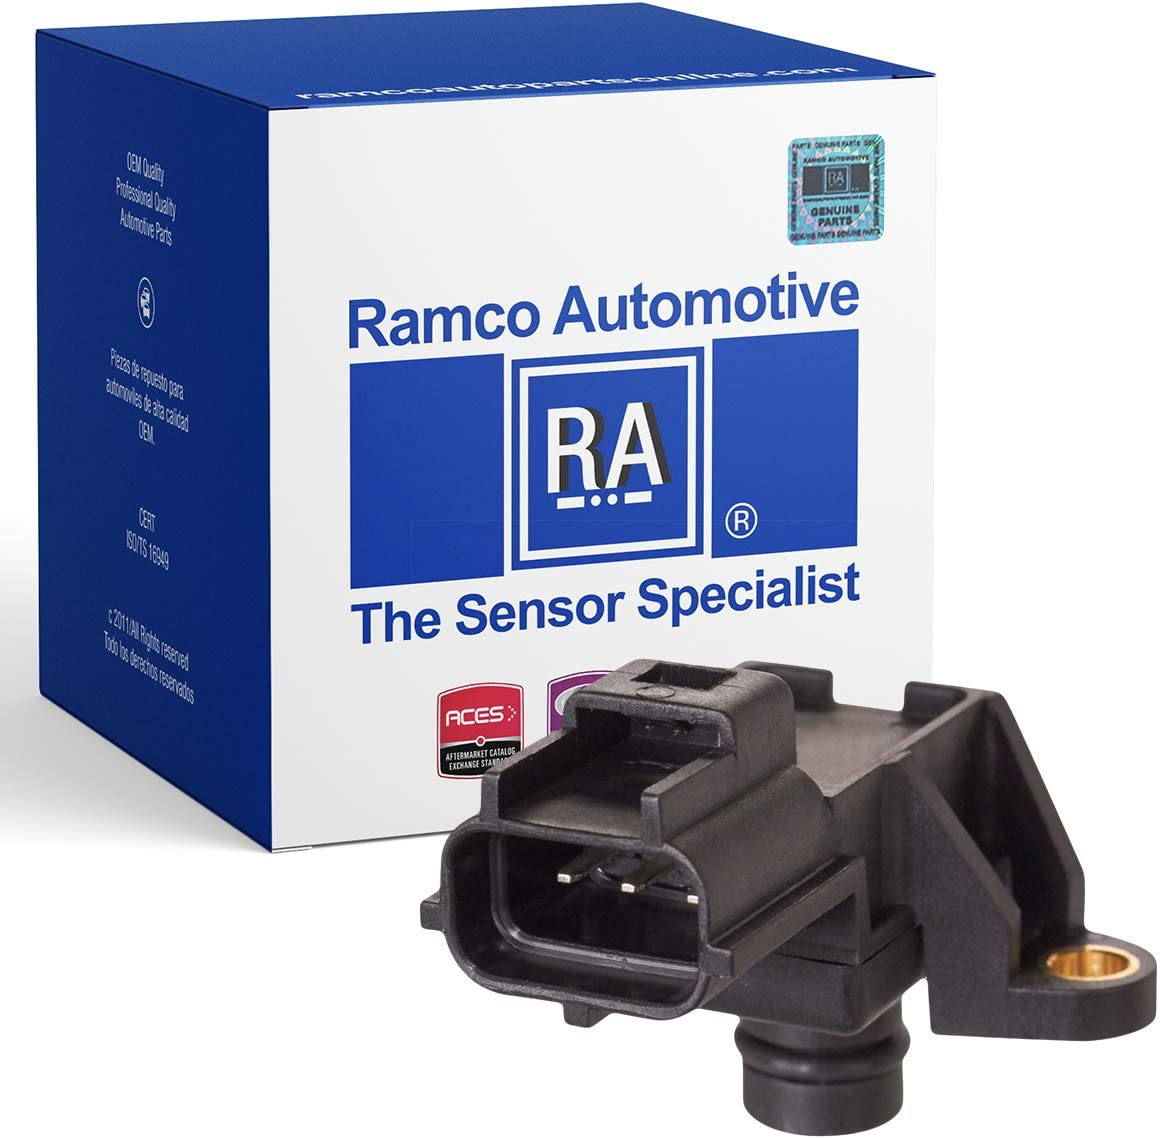 RA-MS1006 Compatible with Wells SU3185 Ramco Automotive Manifold Absolute Pressure Sensor Standard Motor Products AS141 AS91